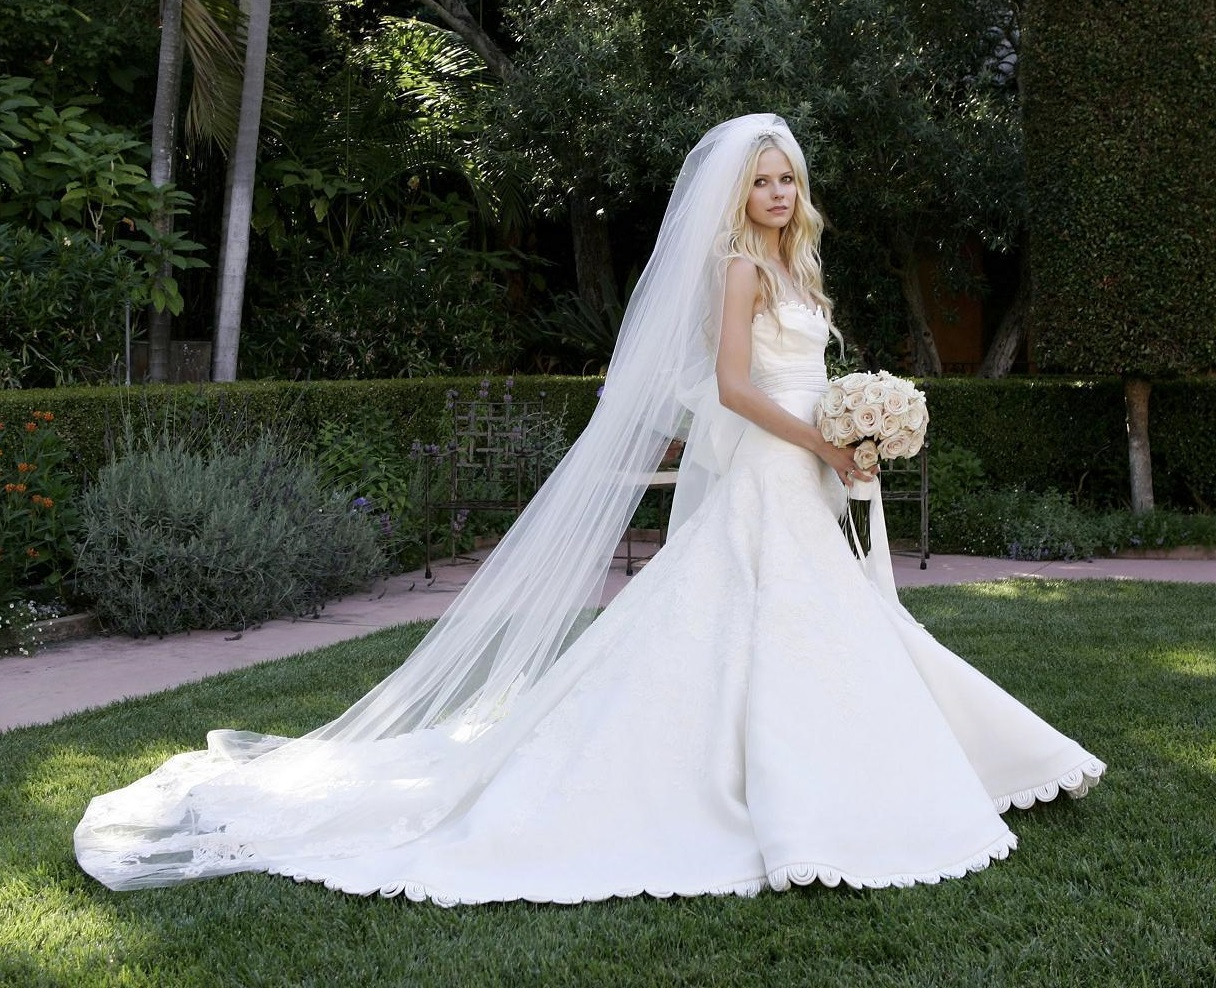 46 Breathtaking Celebrity Brides On Their Big Day